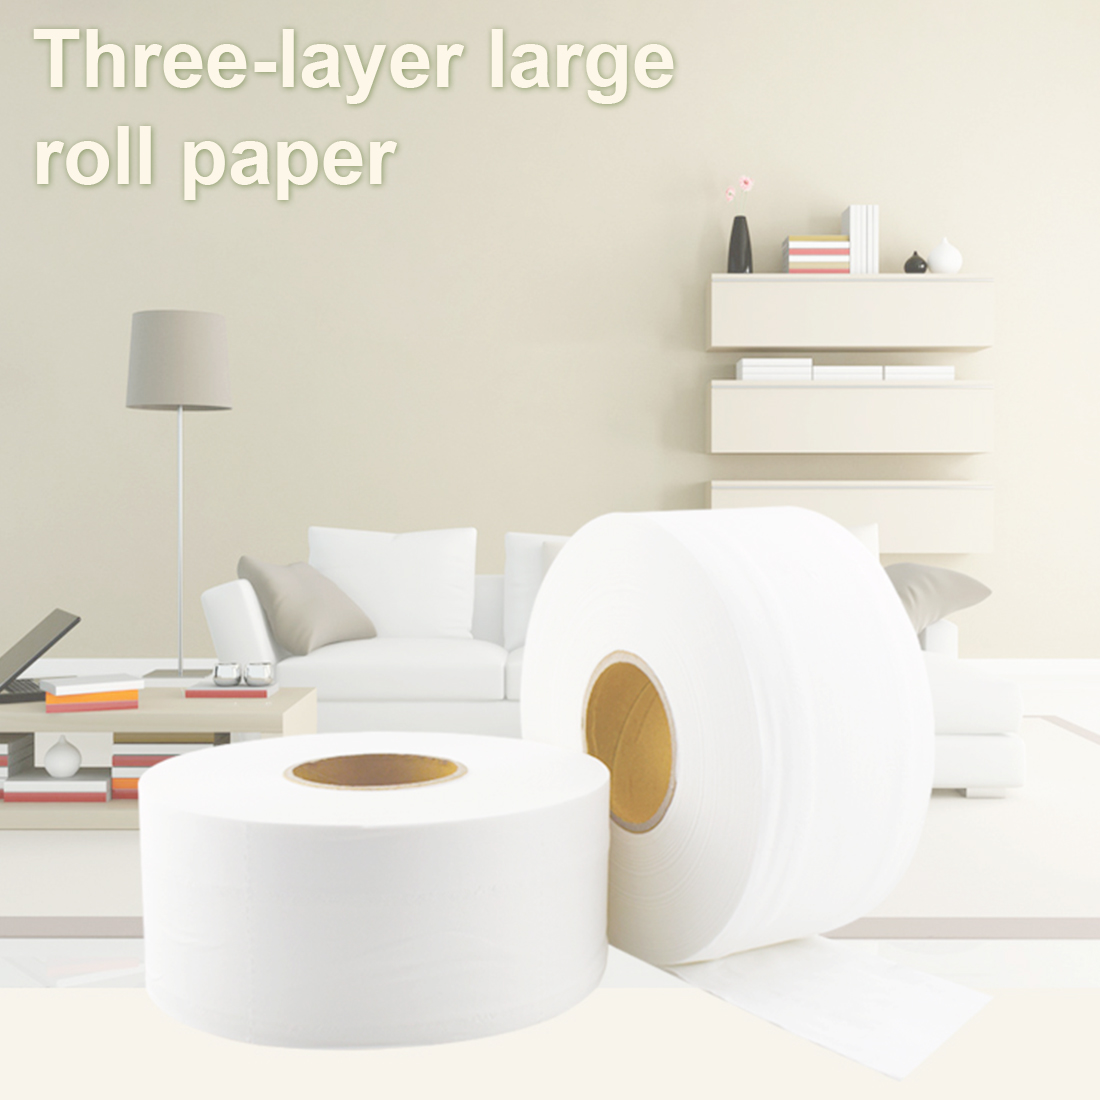 2pcs 580g/roll 900+ Sheet Jumbo Roll White Toilet Tissue Soft Hollow Replacement Roll Paper Toilet Paper  For Home Public Hotel